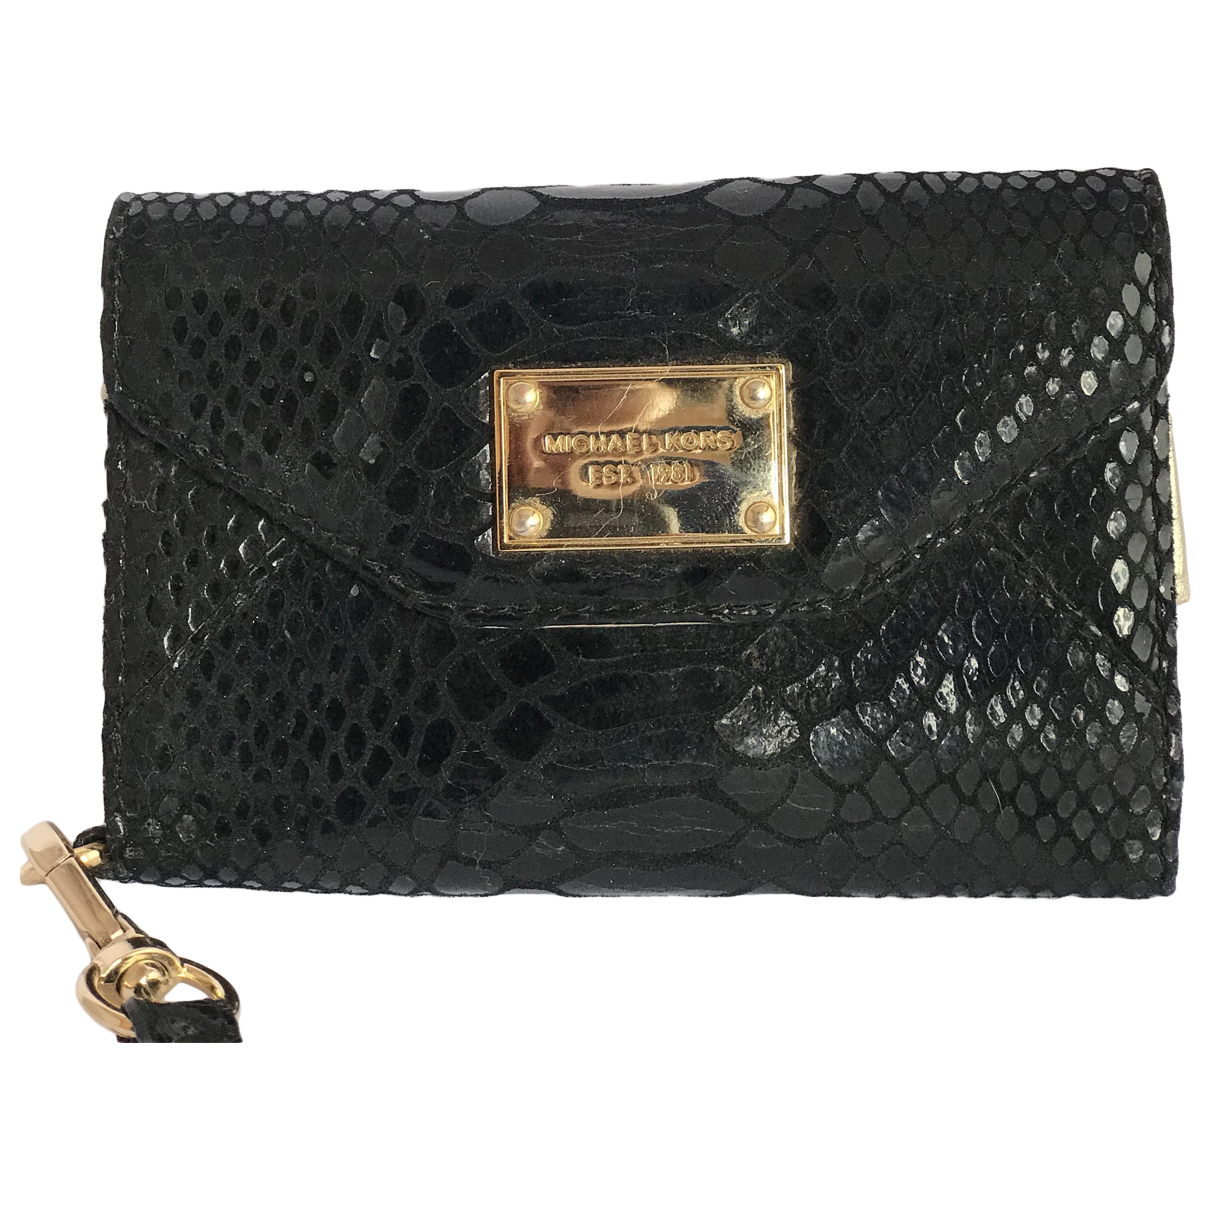 Michael Kors N Black Purses, wallet & cases for Women N